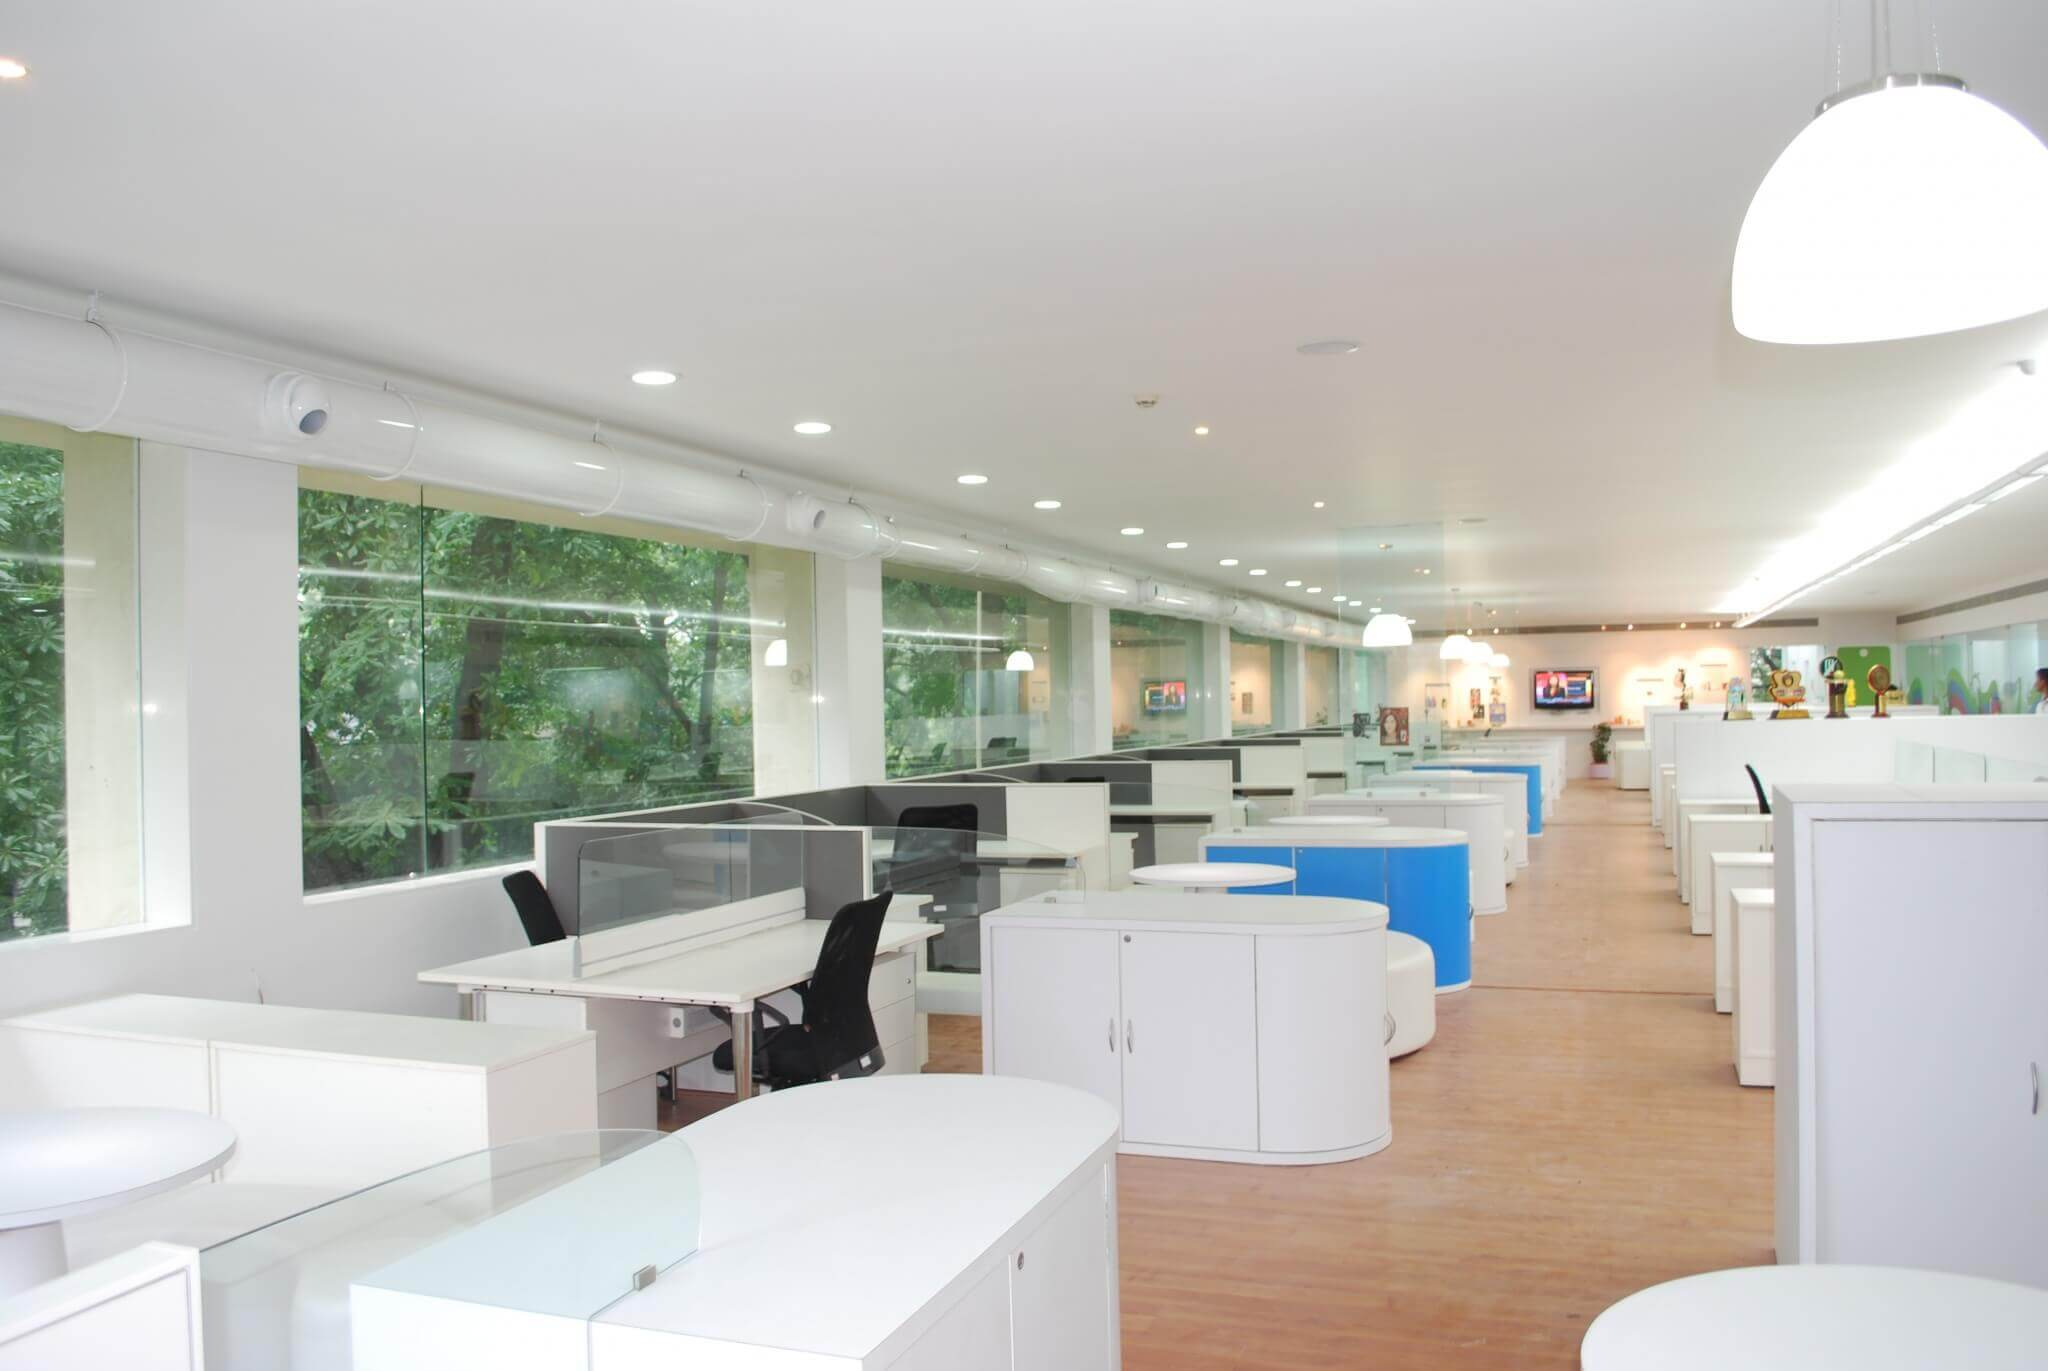 GCPL Vikhroli Mumbai Office Interior Costs